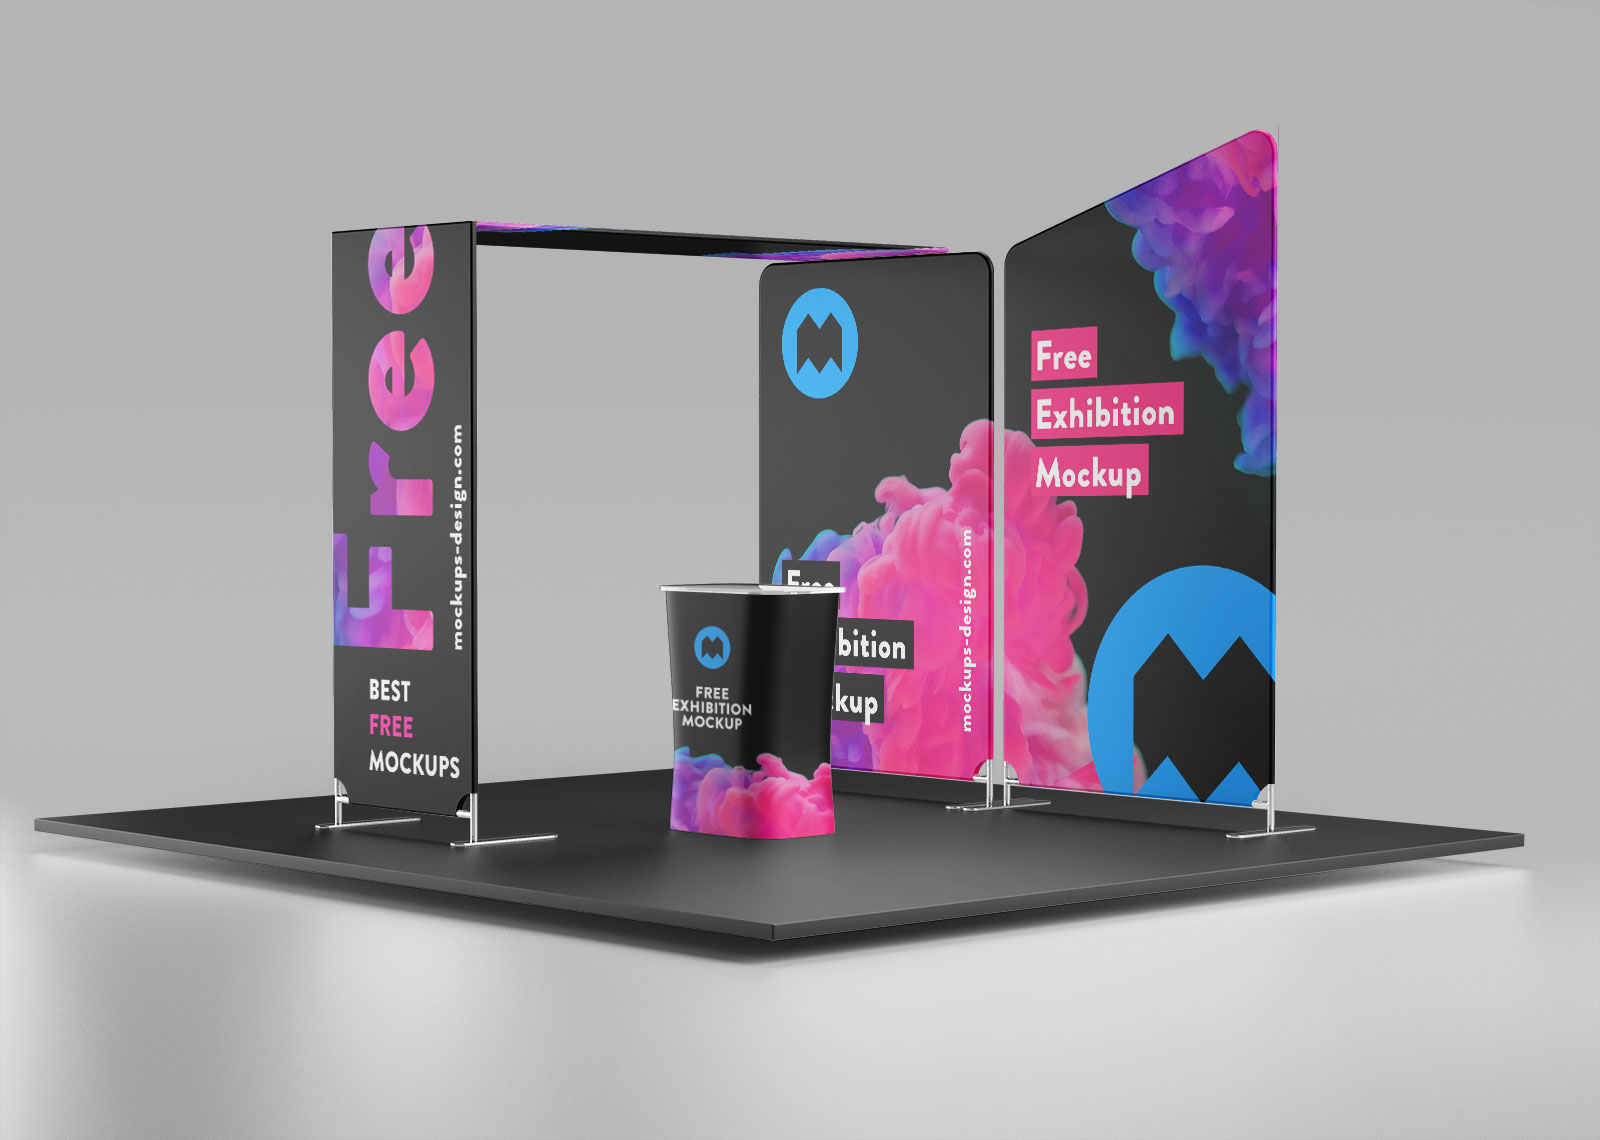 Trade Exhibition Stand Mockup Free : Free trade show exhibition display stand mockup psd set